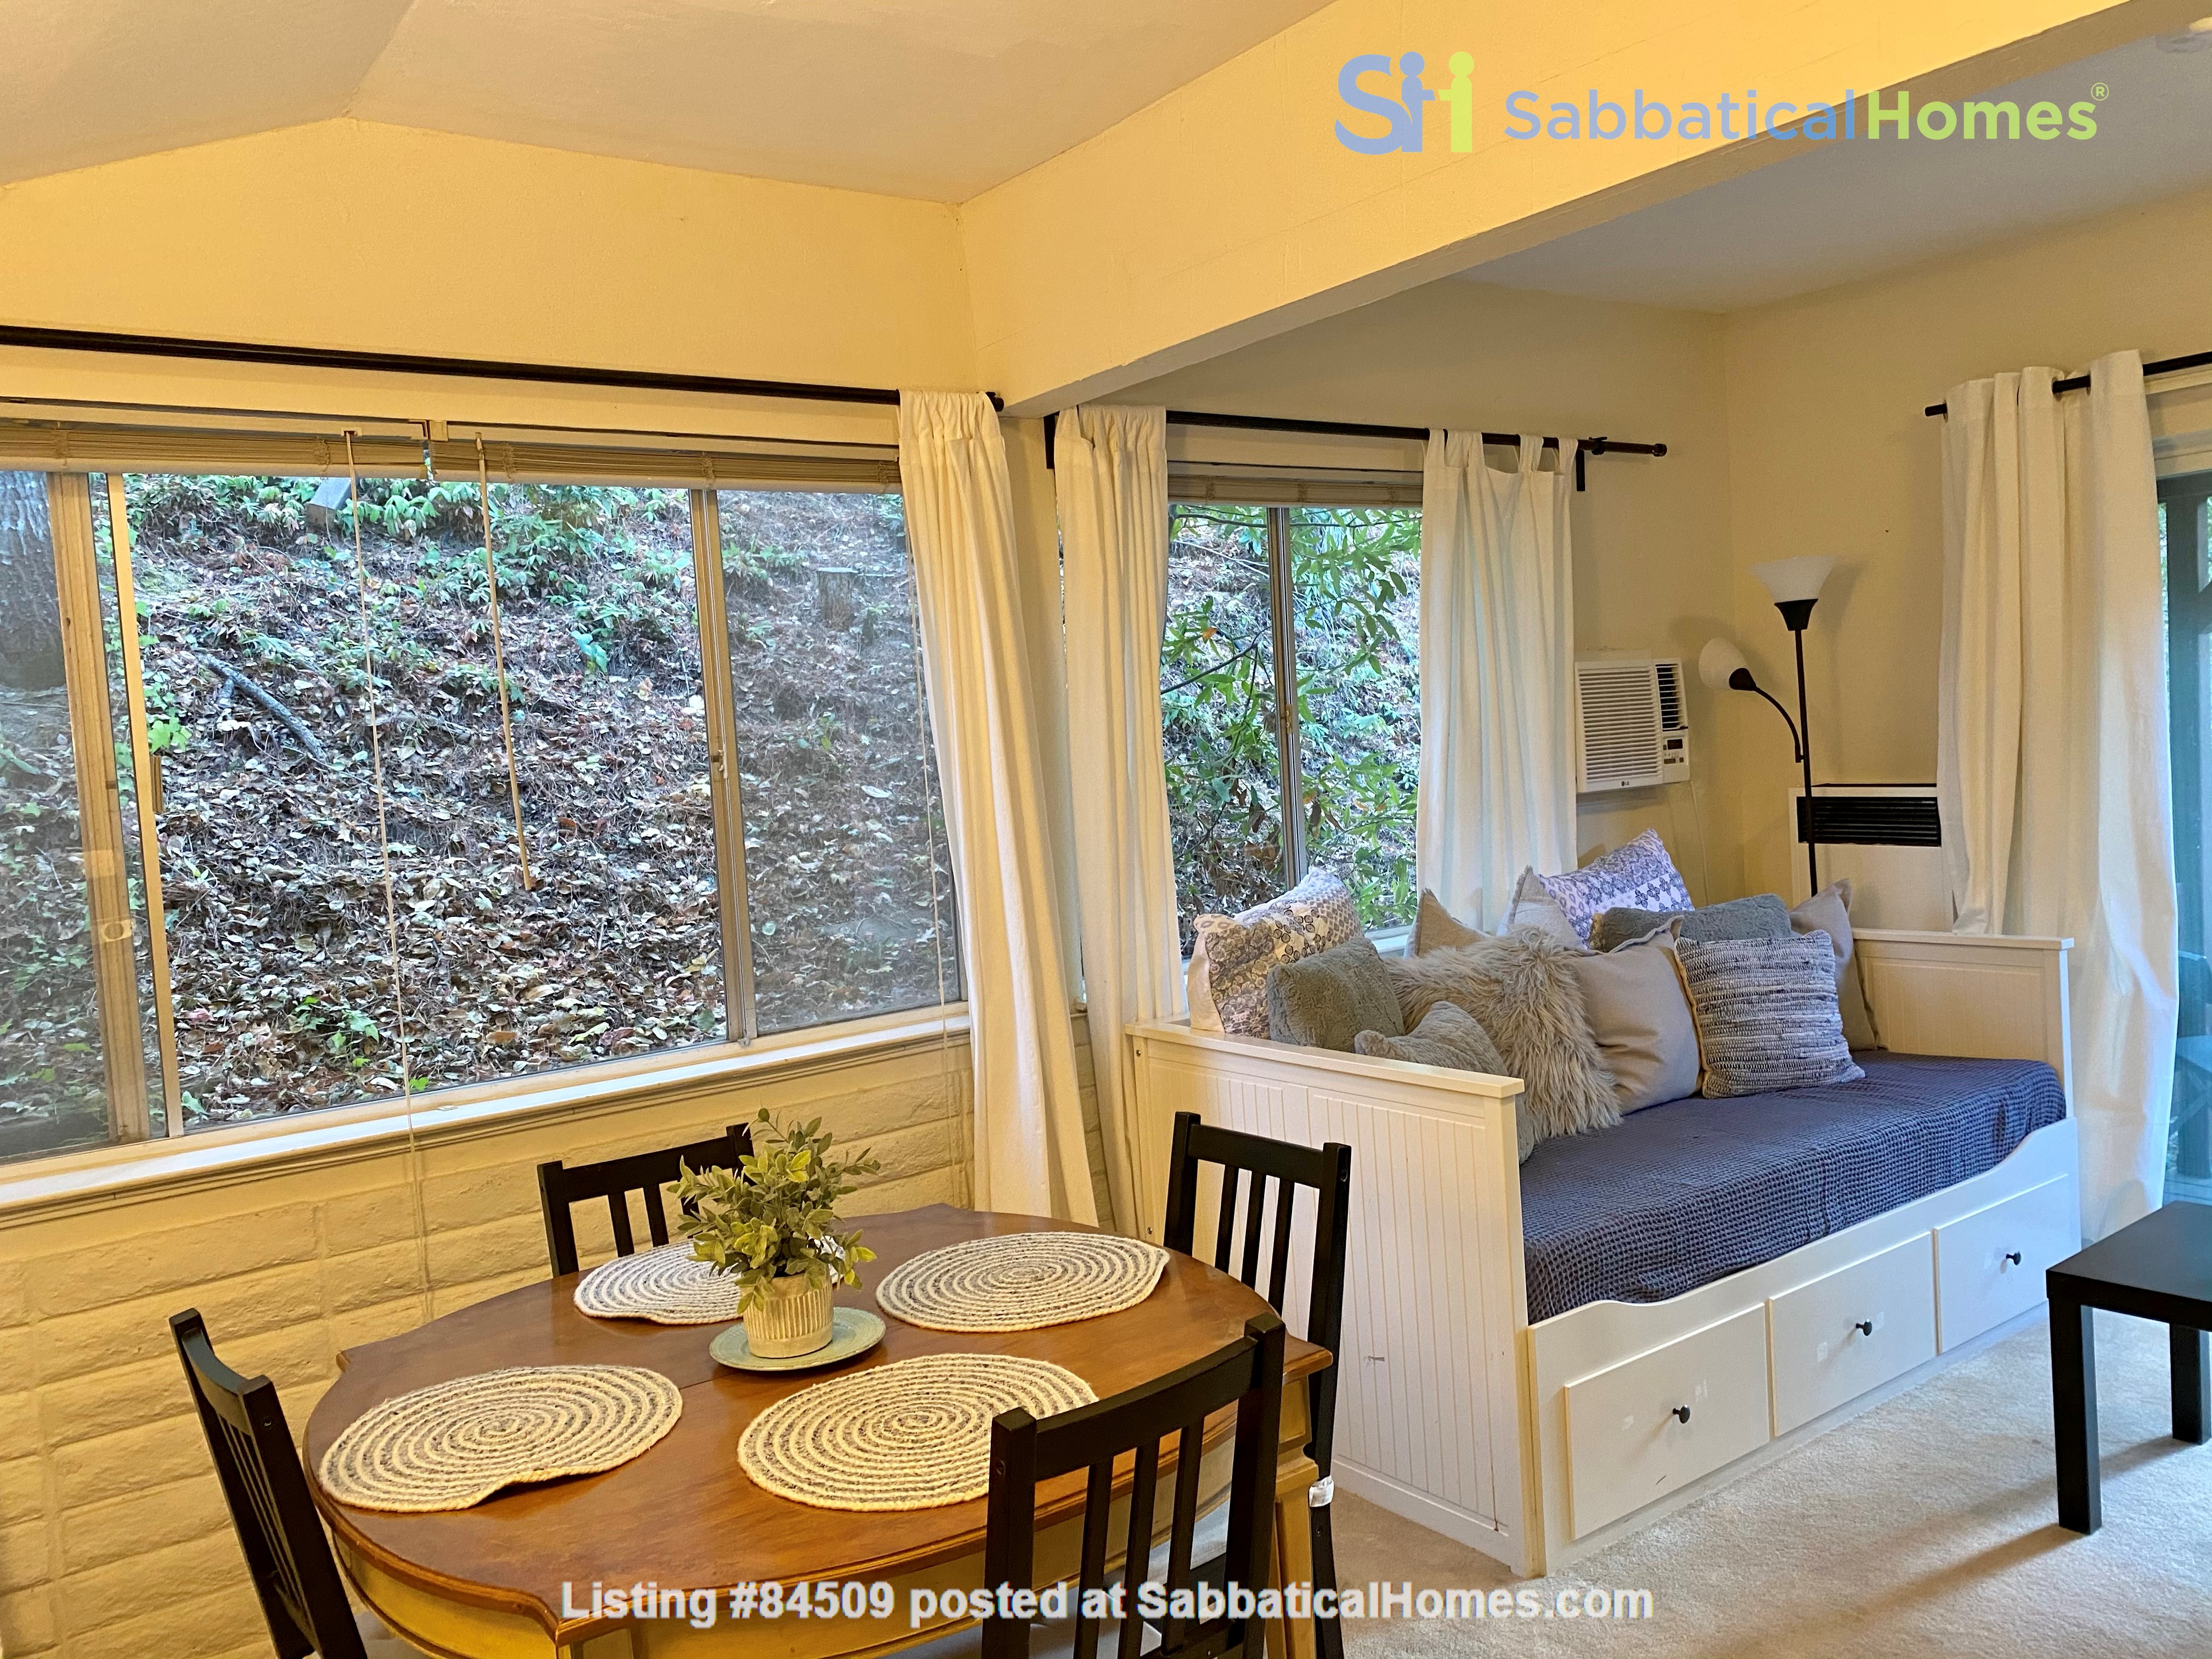 Charming, fully furnished 1BR apartment in Orinda Home Rental in Orinda, California, United States 2